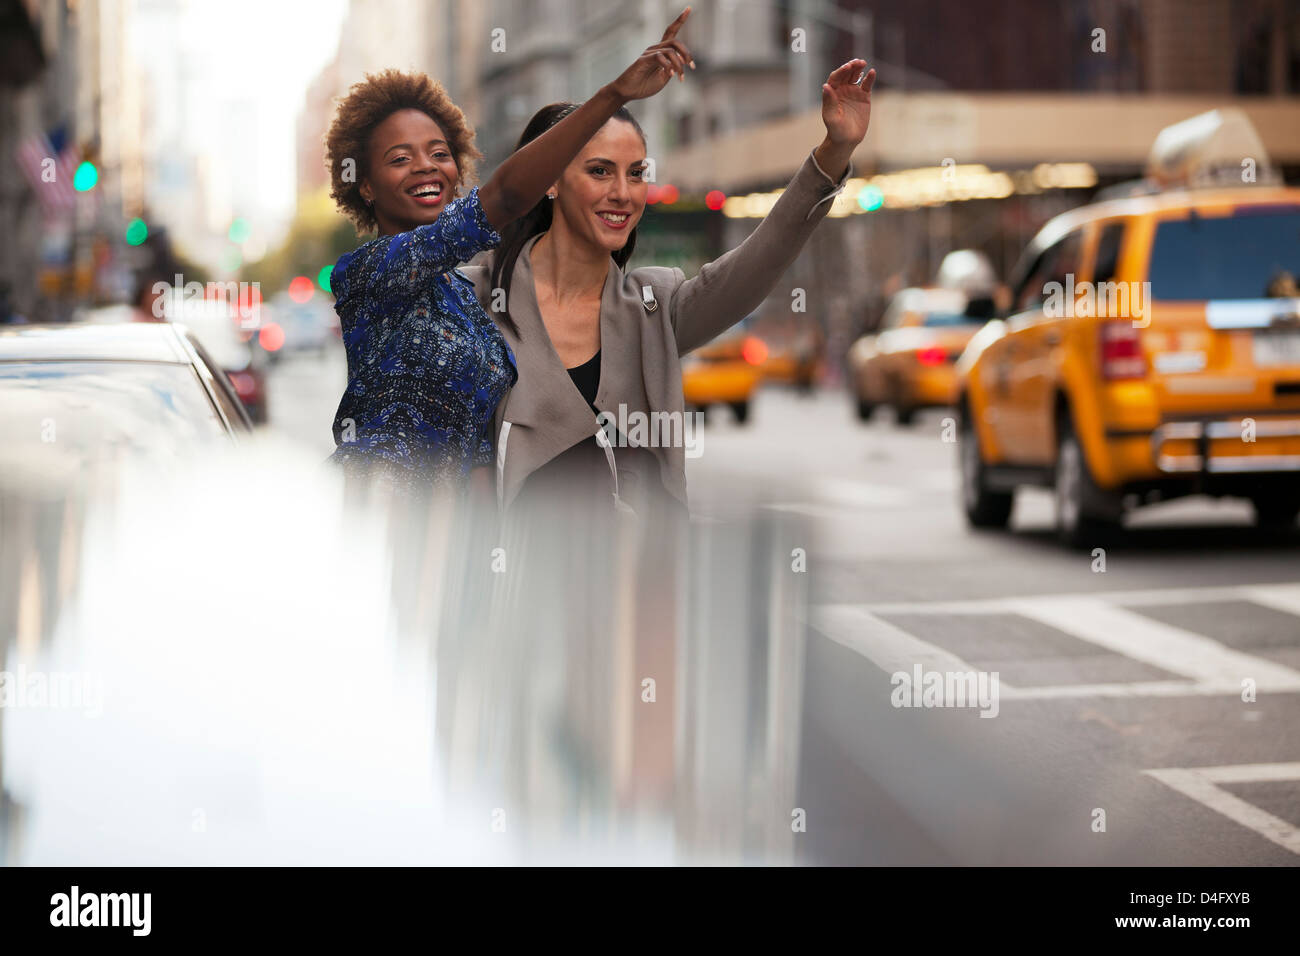 Women hailing taxi on city street - Stock Image